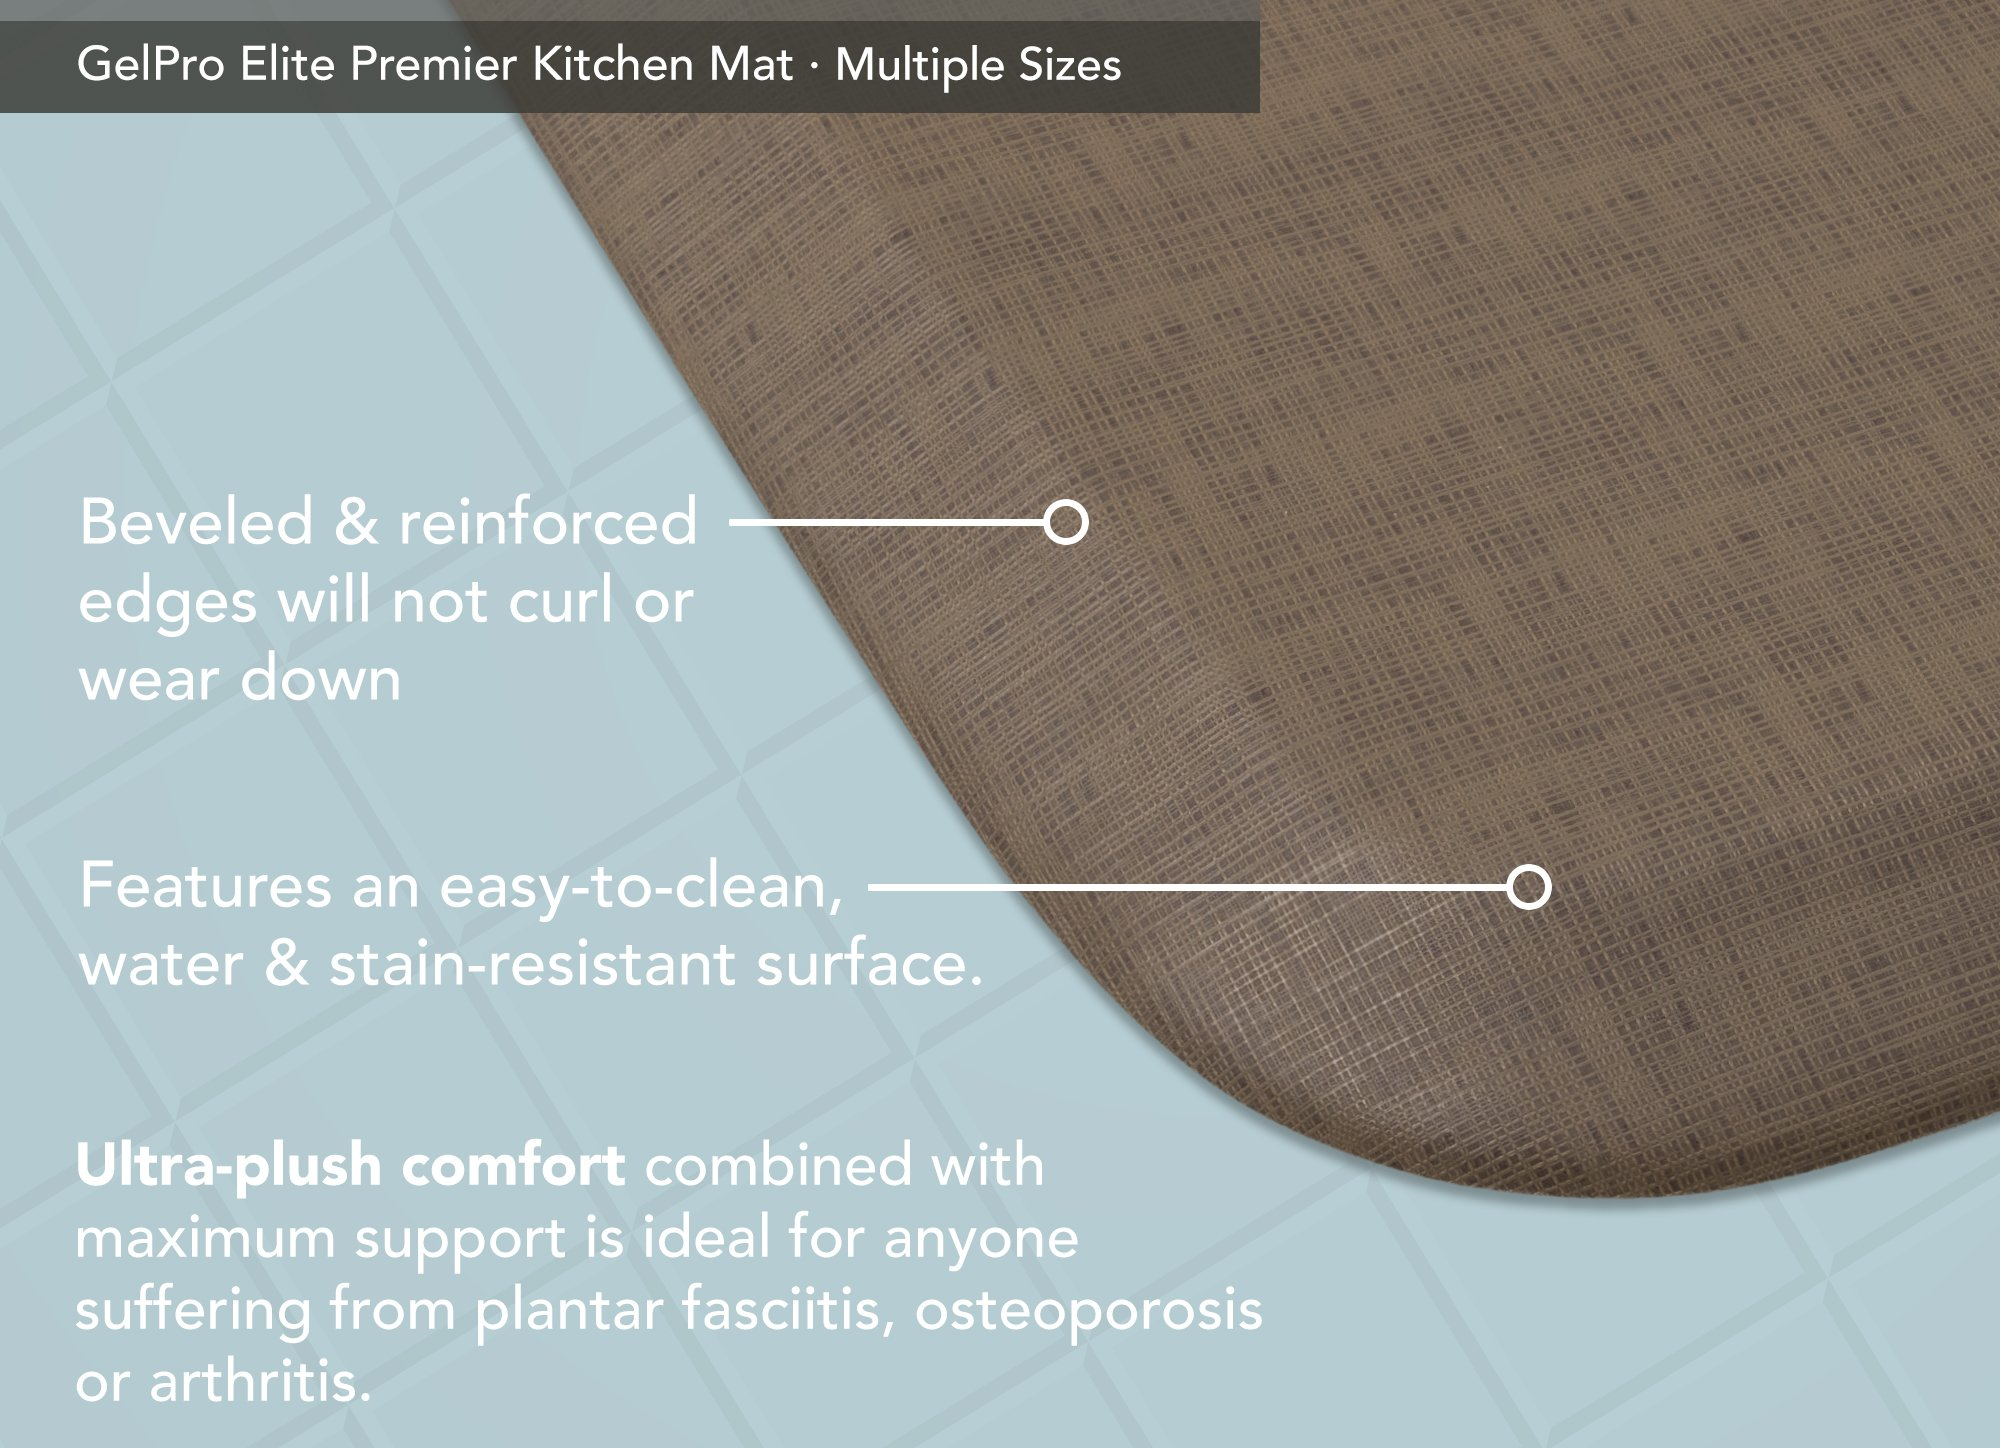 "GelPro Elite Premier Anti-Fatigue Kitchen Comfort Floor Mat, 20x36"", Linen Sandalwood Stain Resistant Surface with therapeutic gel and energy-return foam for health & wellness by GelPro (Image #4)"